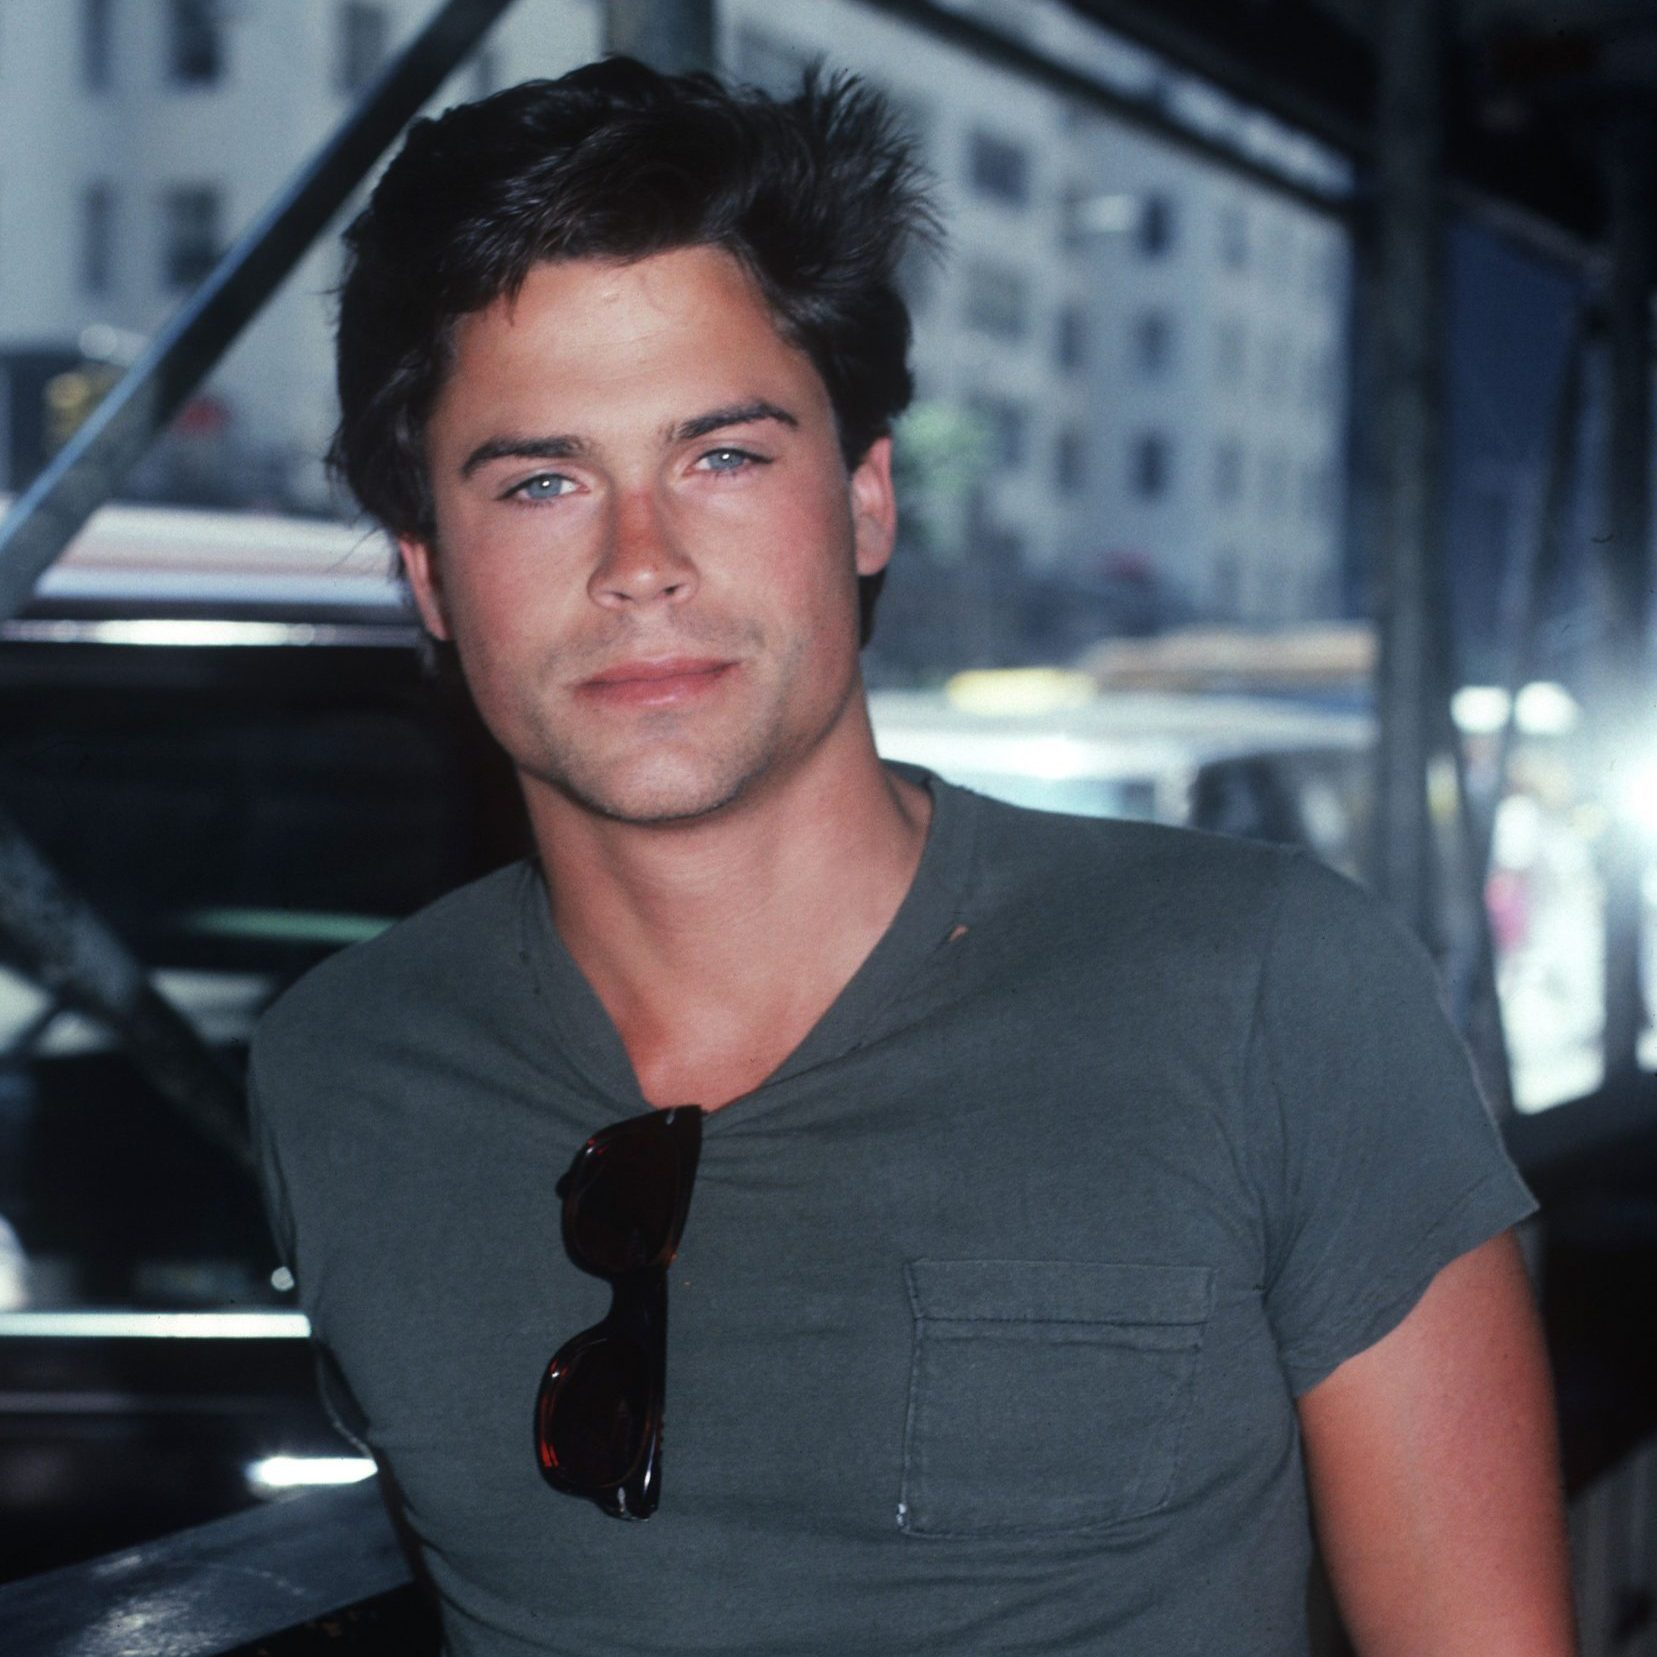 rob lowe in new york city in 1987 news photo 525331204 1564506048 scaled e1603185078789 20 Things You Probably Didn't Know About The 1984 Sci-Fi Film Dune